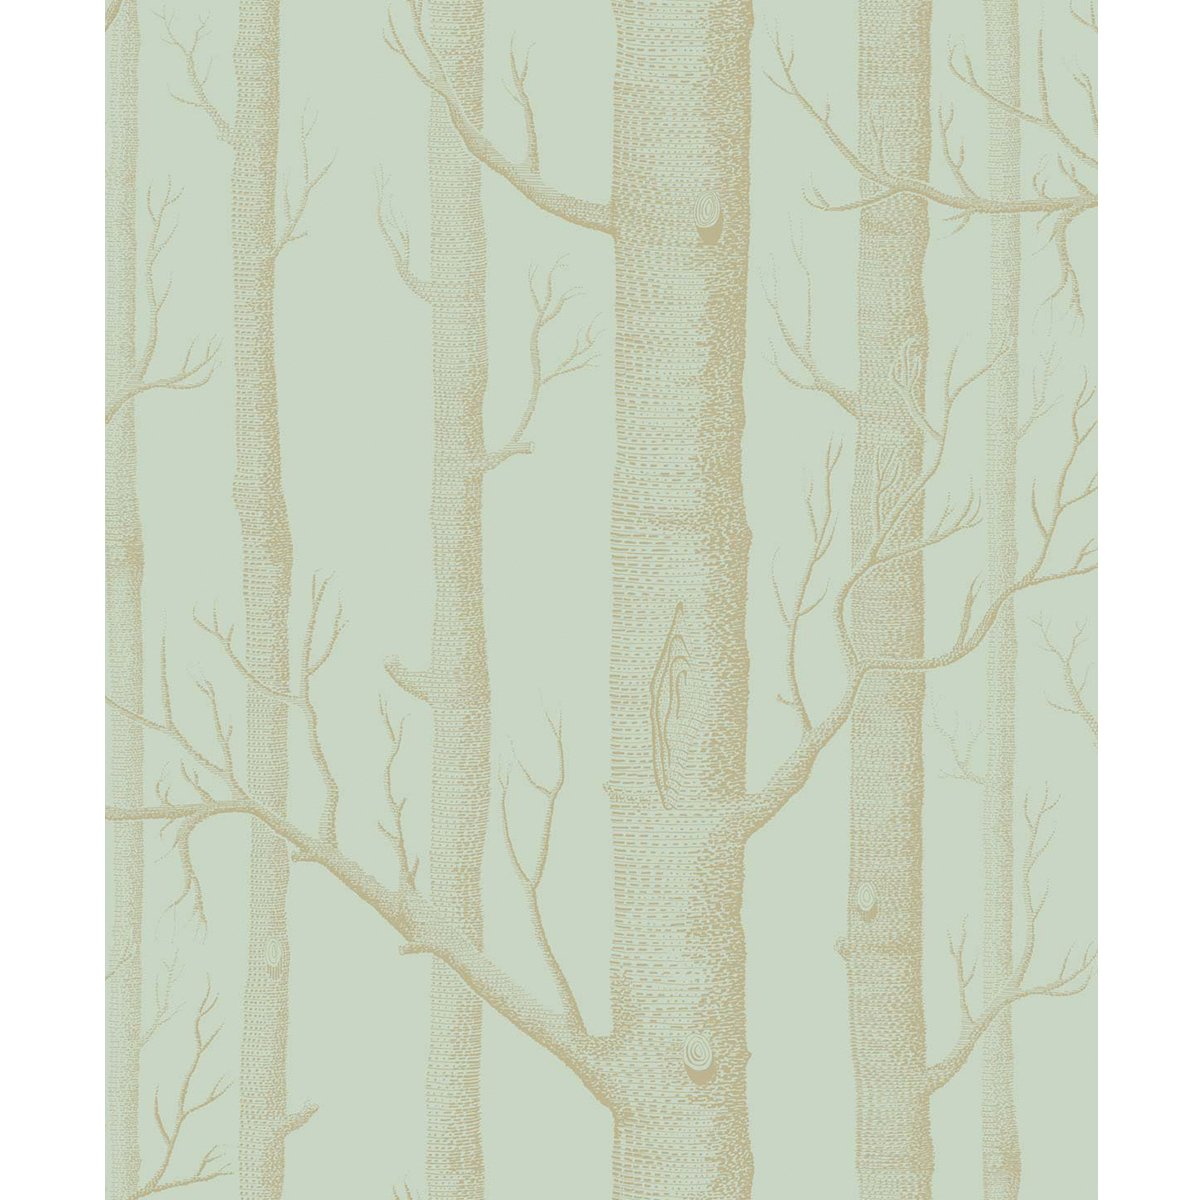 Cole & Son Woods Behang - 1035023